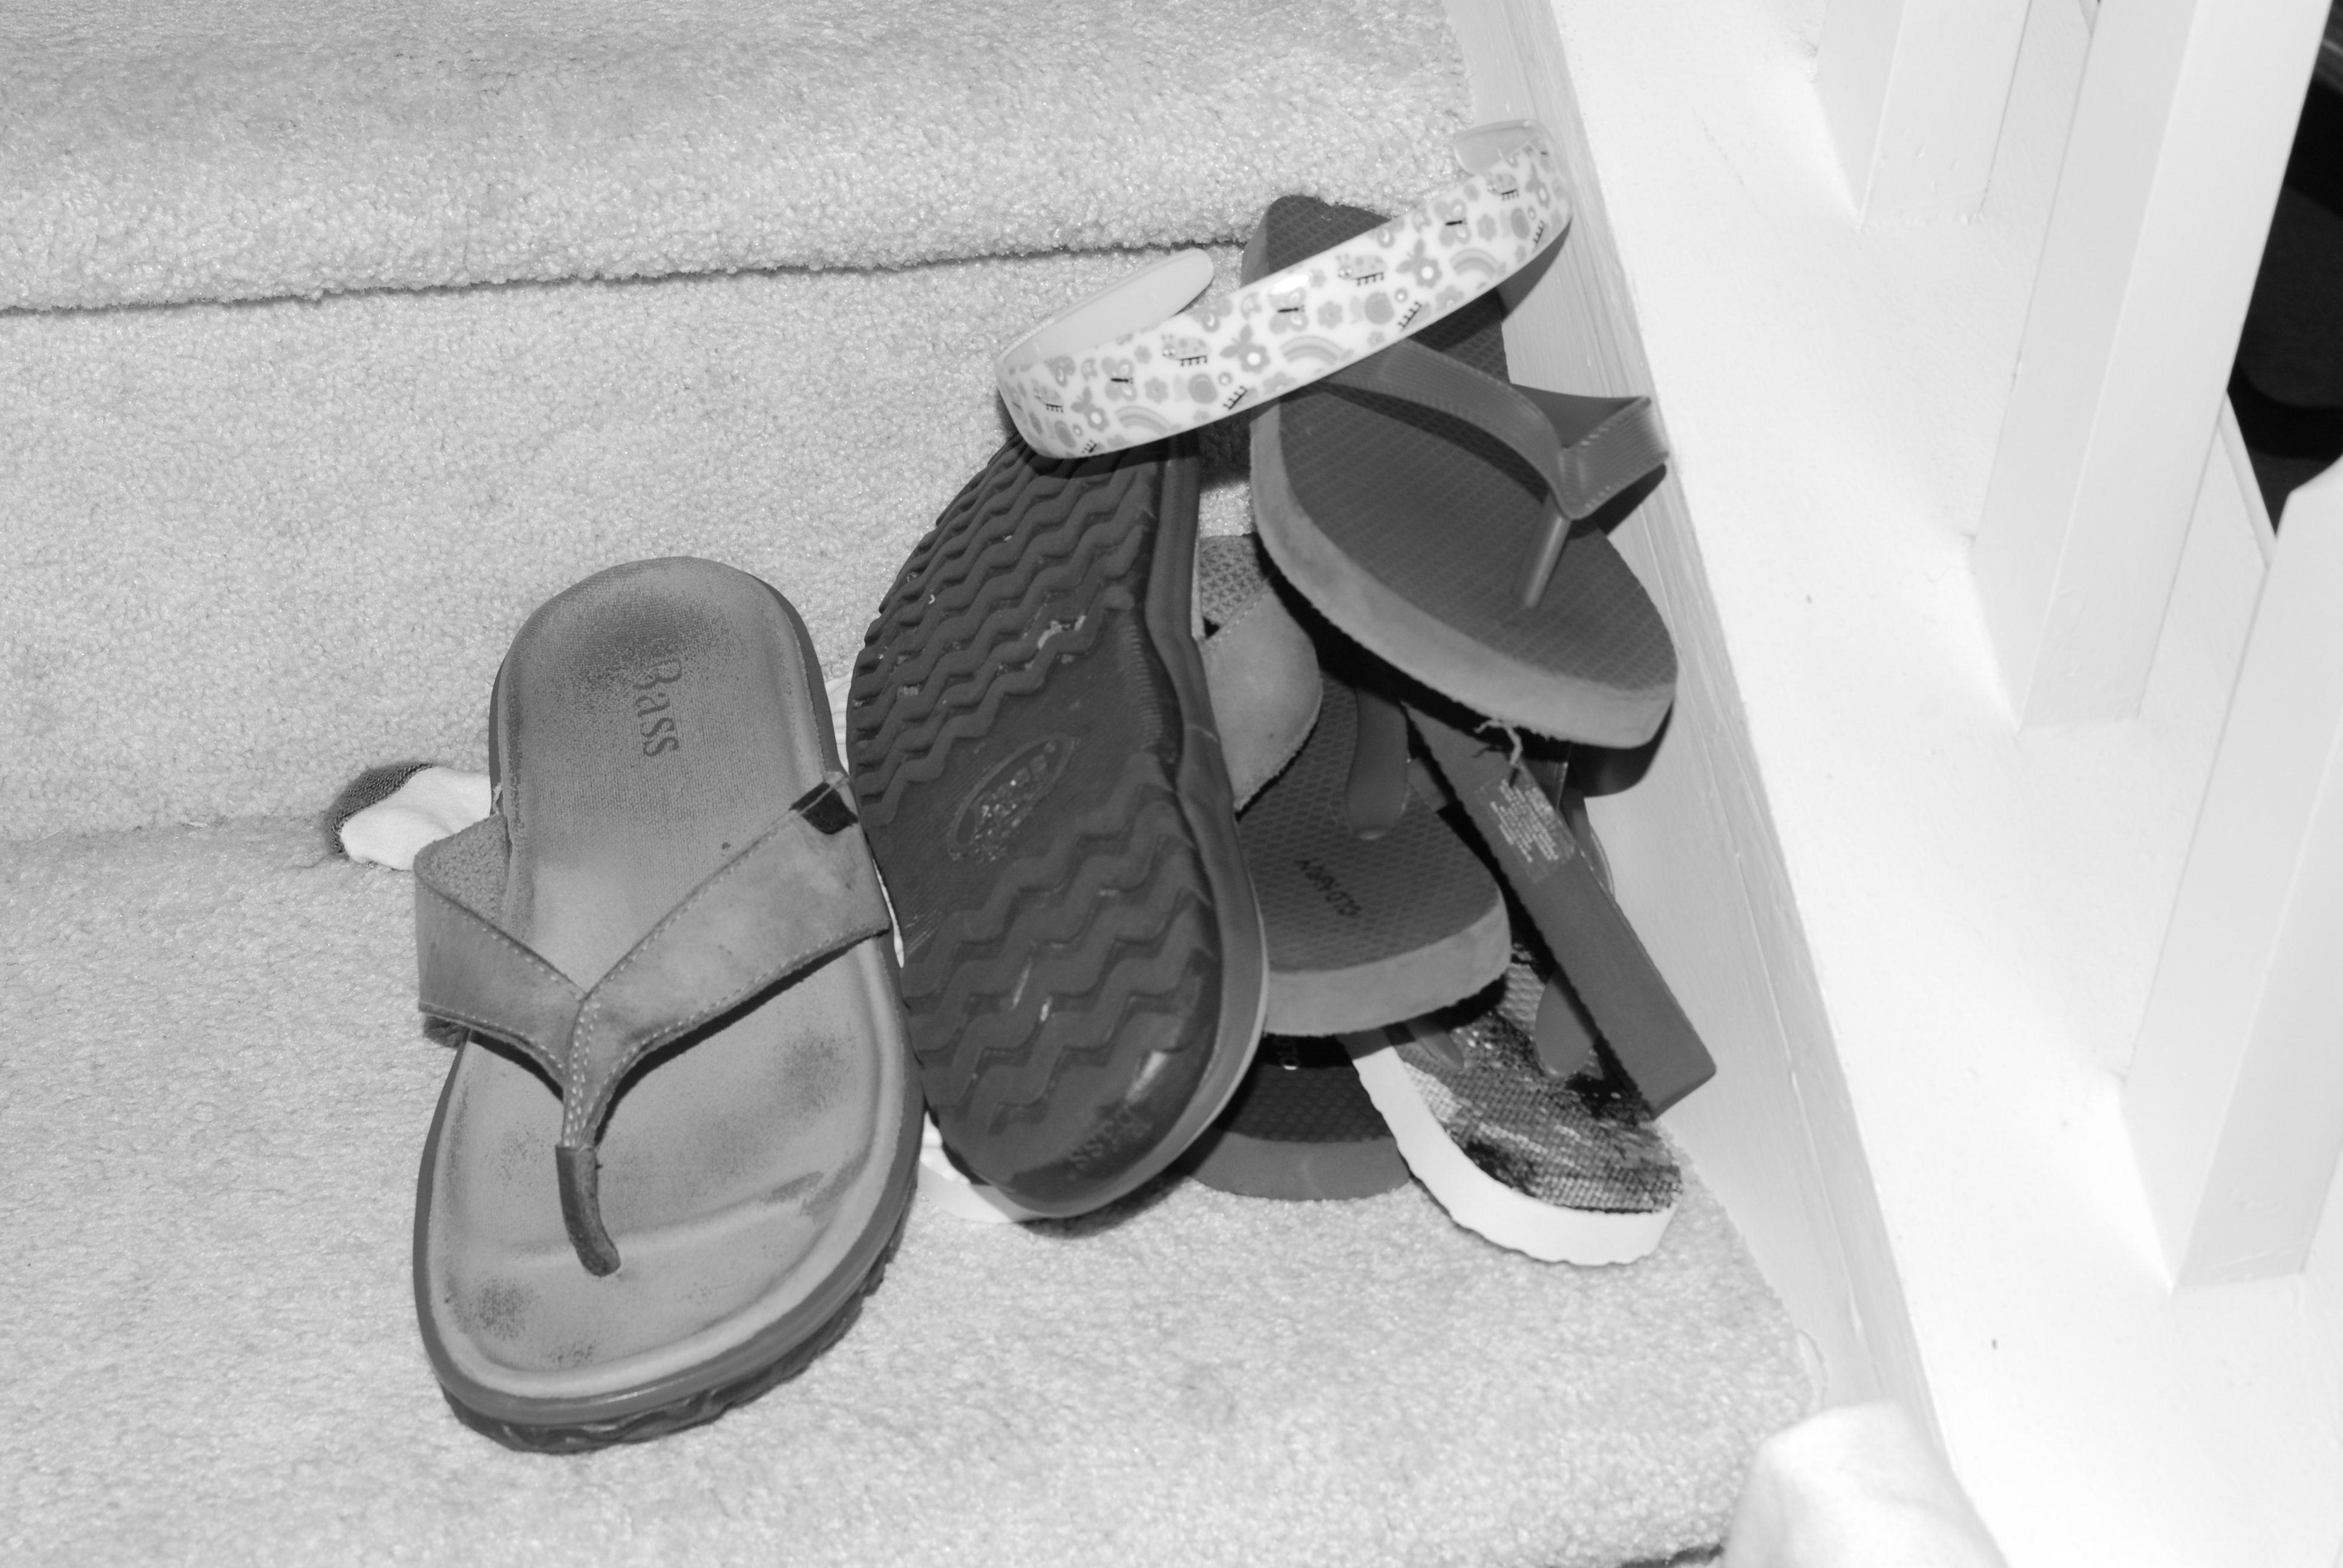 Clearly this house needs more flip-flops.  Clearly.